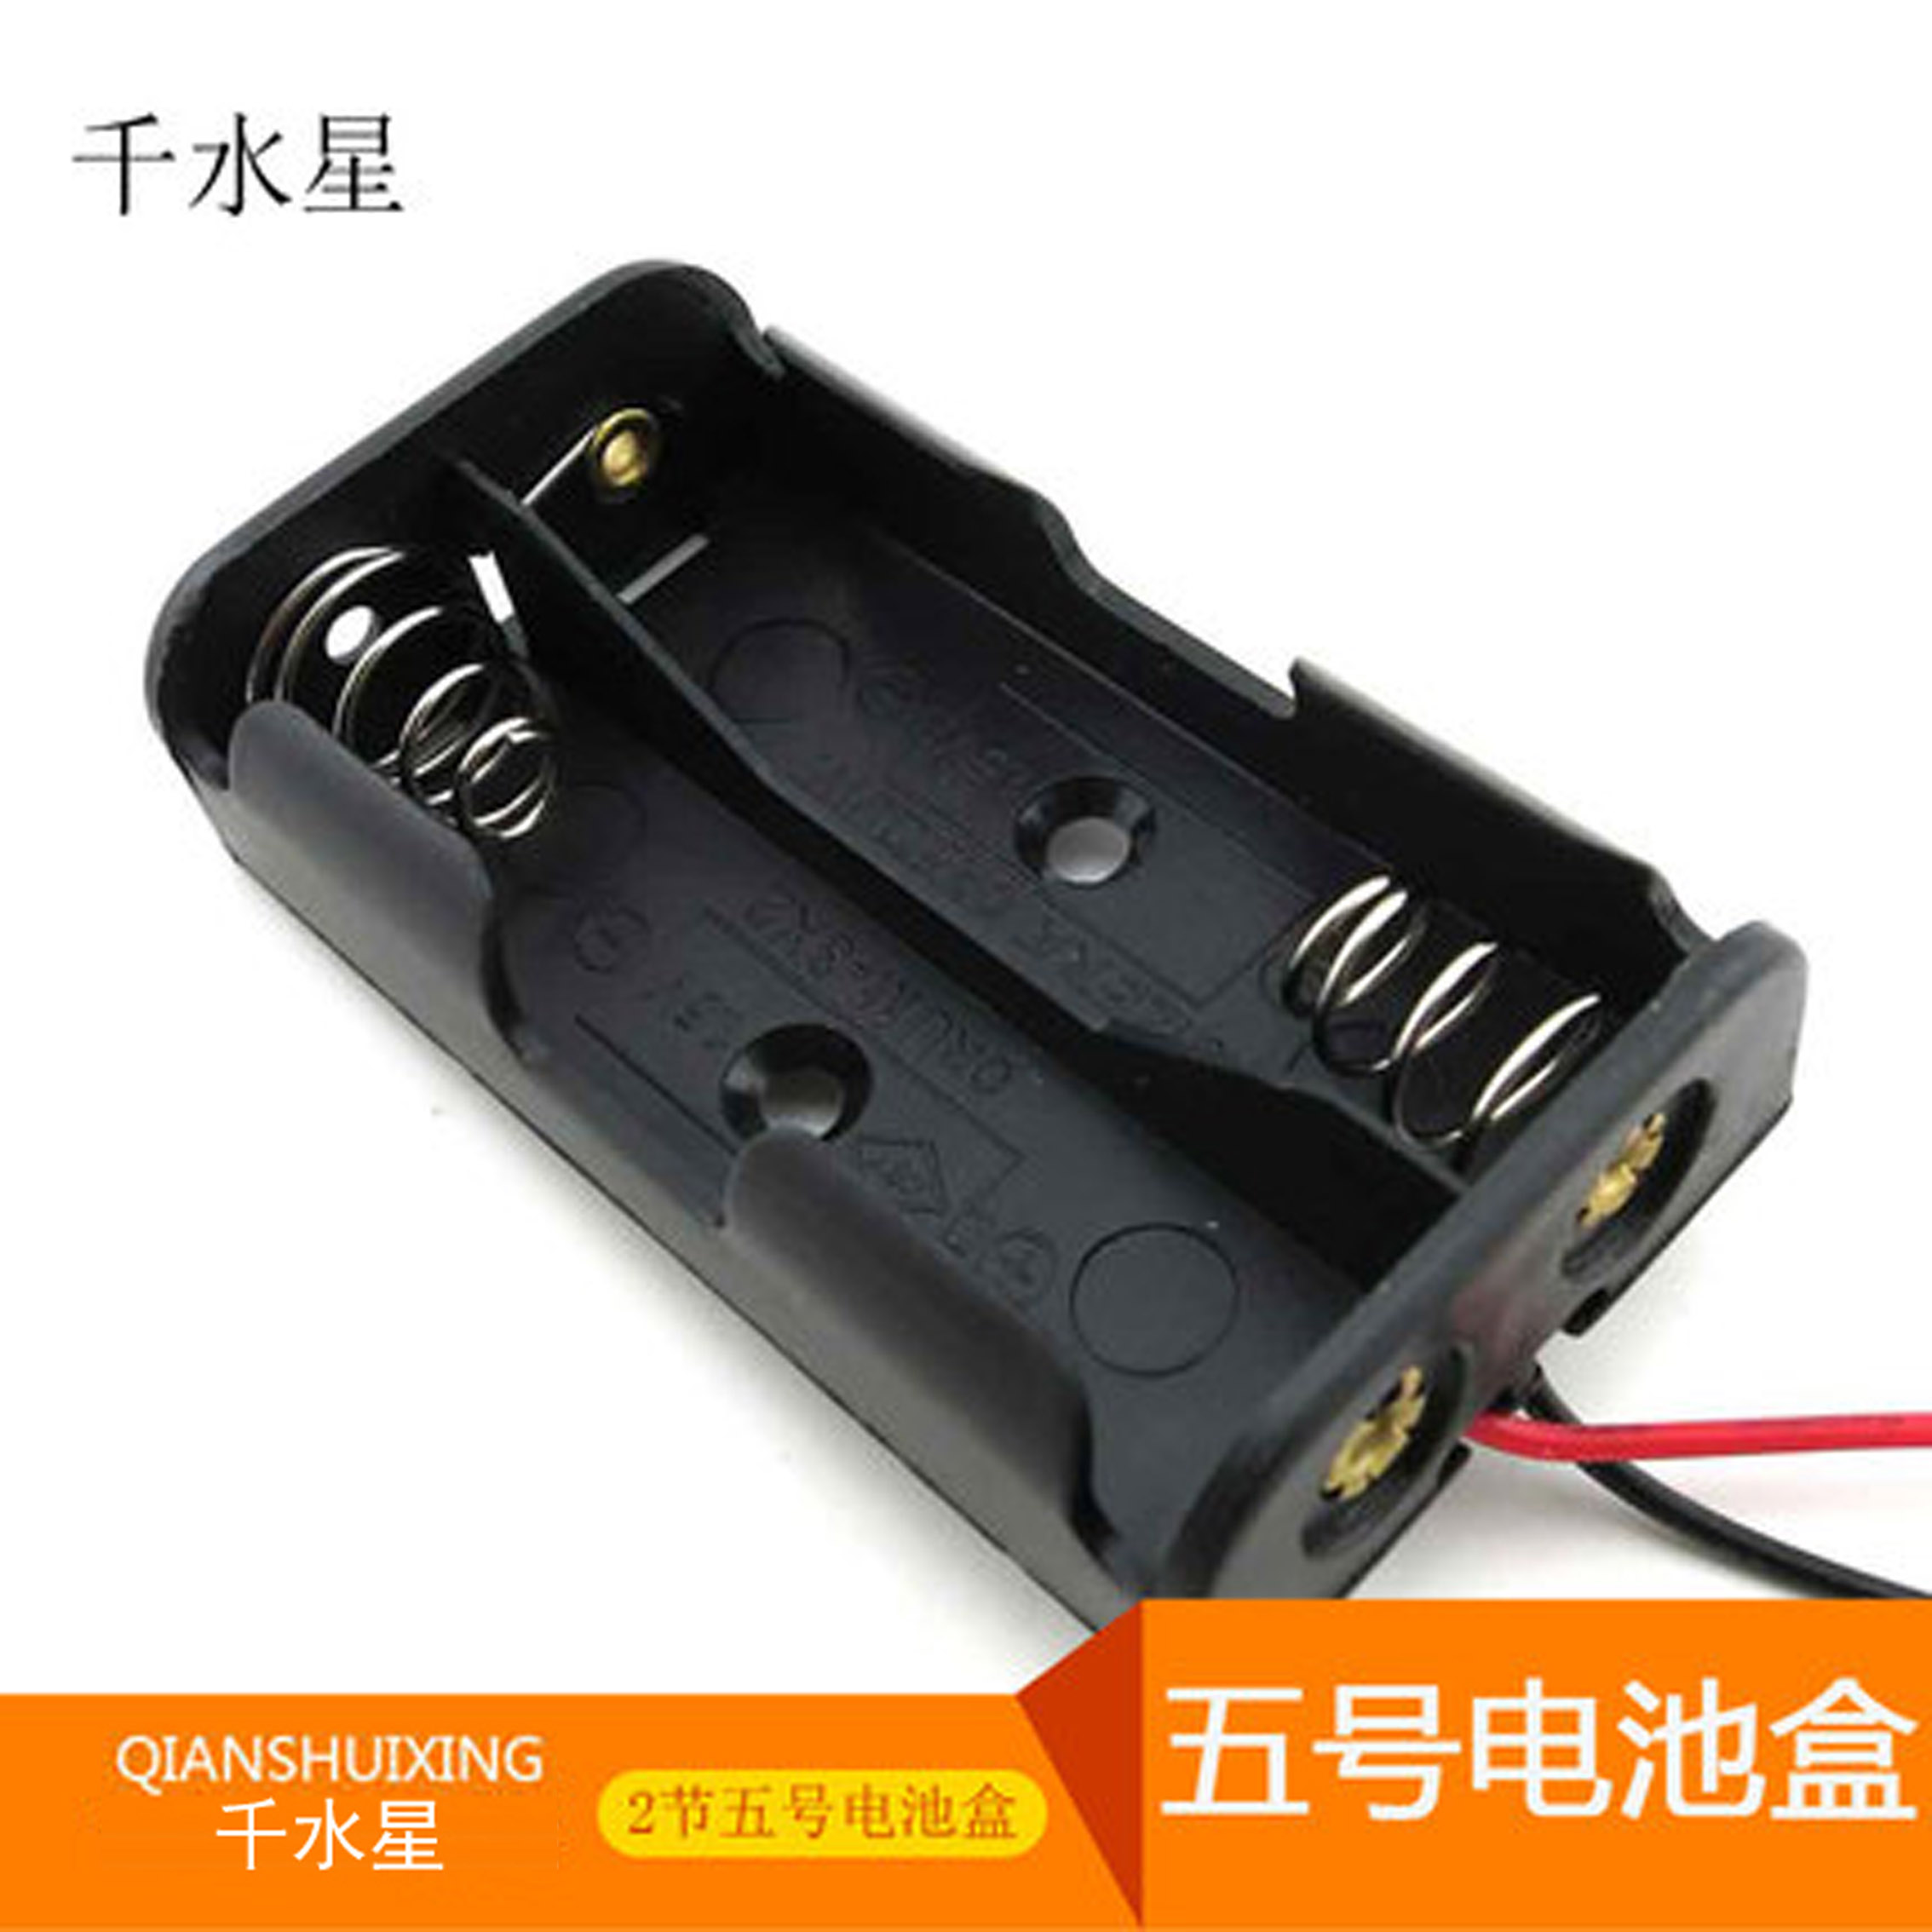 2 section 5th battery box Model power supply diy small production toy accessories can be installed with two 5th battery strip